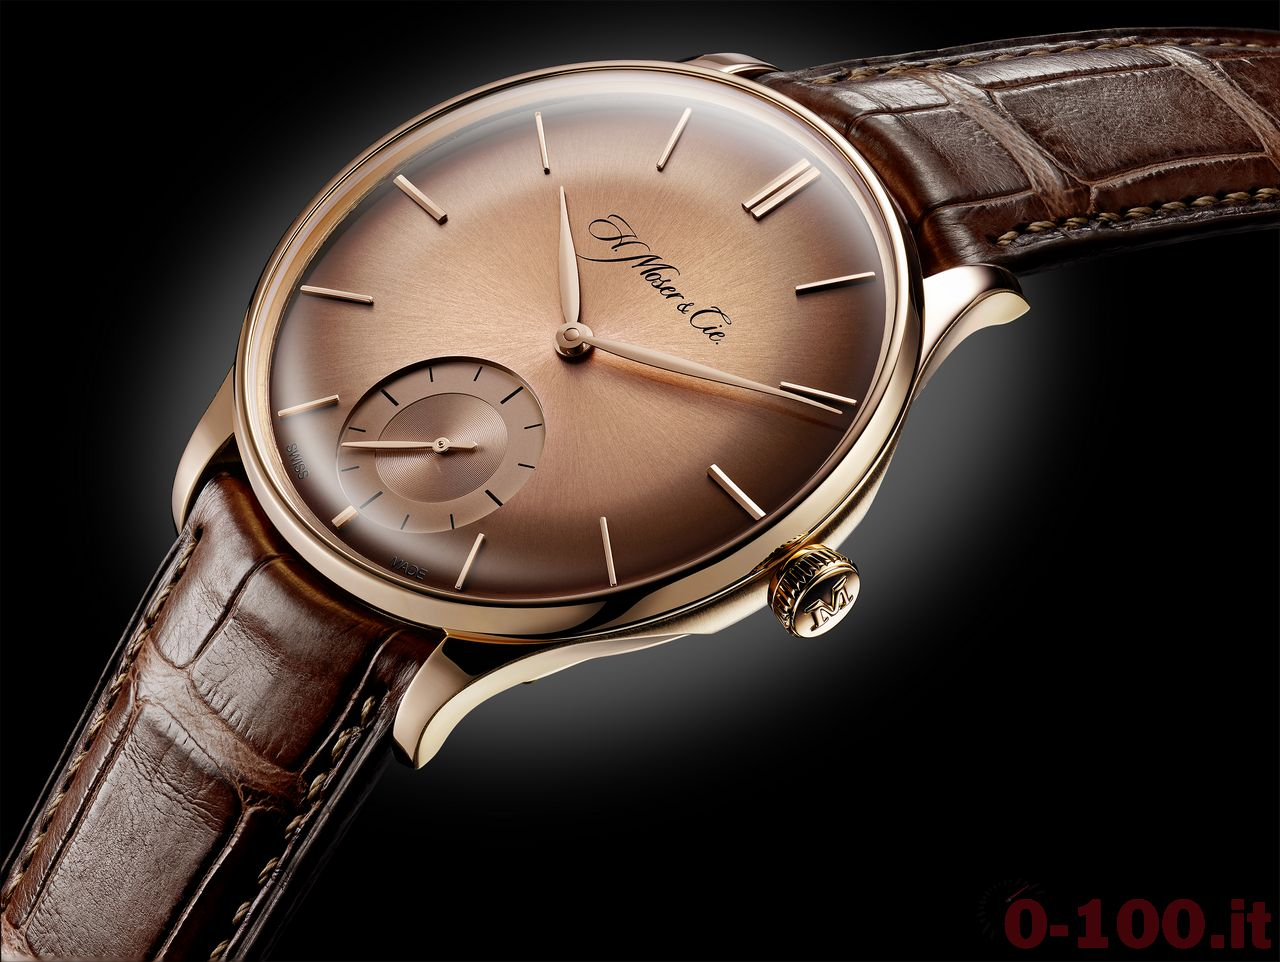 Baselworld-2014-H. Moser & Cie Venturer Small Seconds _0-1005